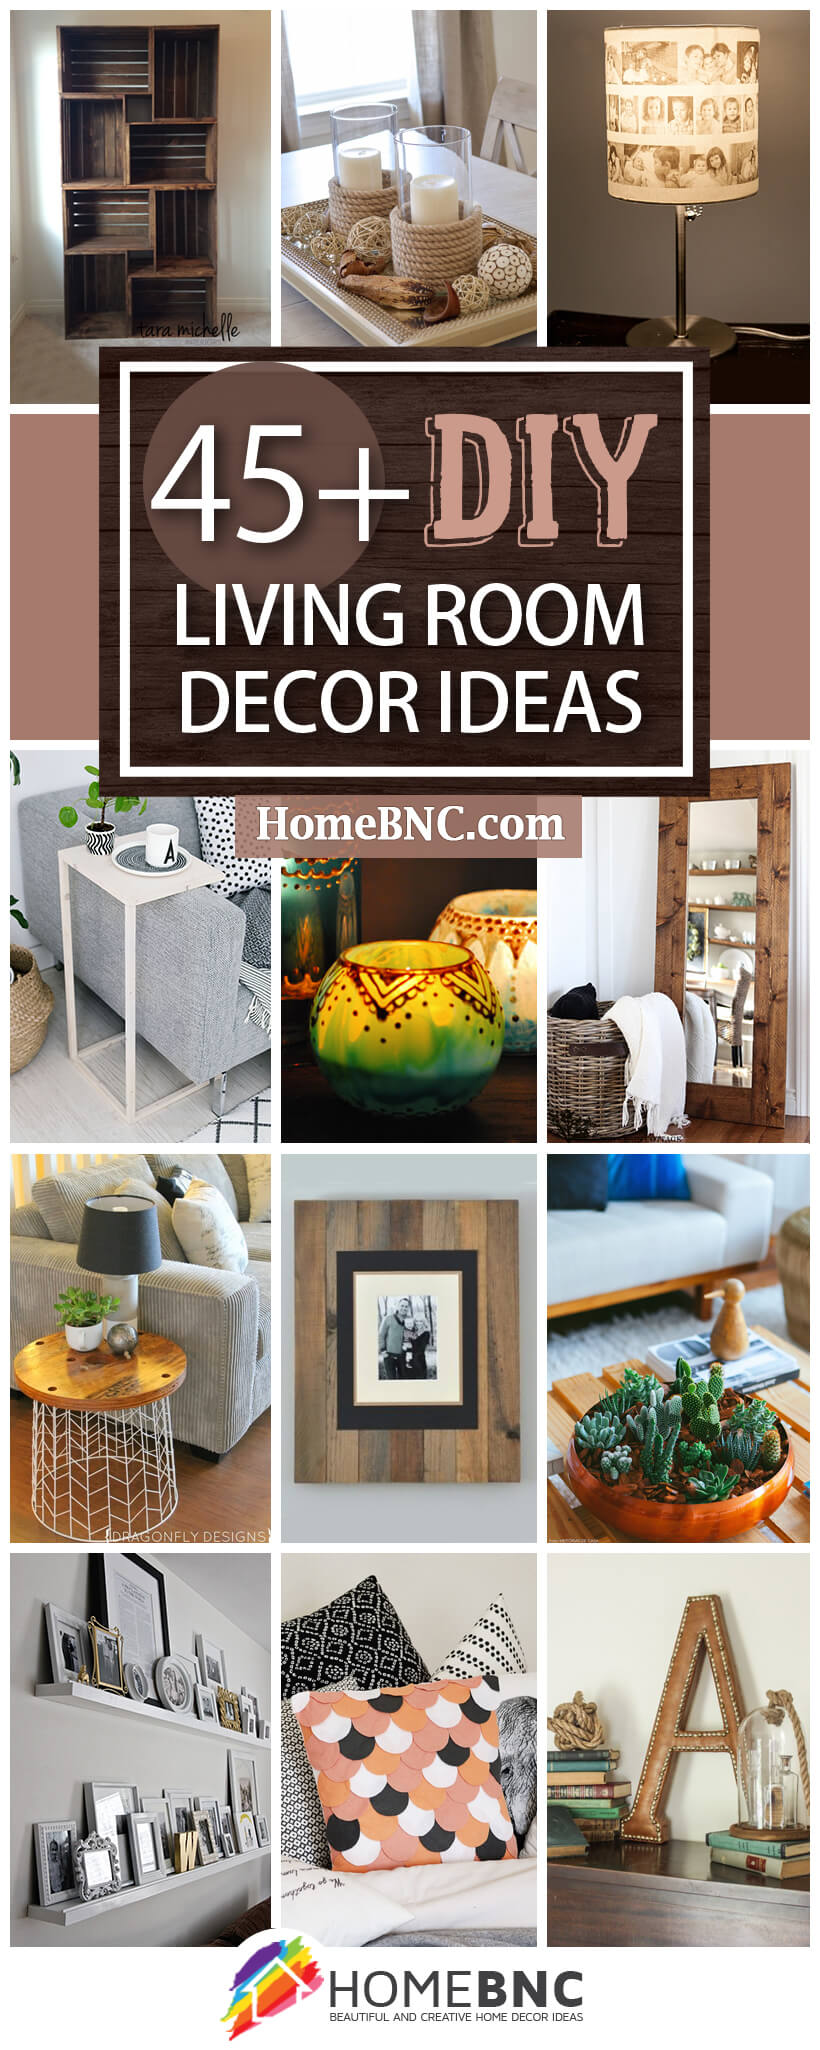 45 best diy living room decorating ideas and designs for 2019. Black Bedroom Furniture Sets. Home Design Ideas